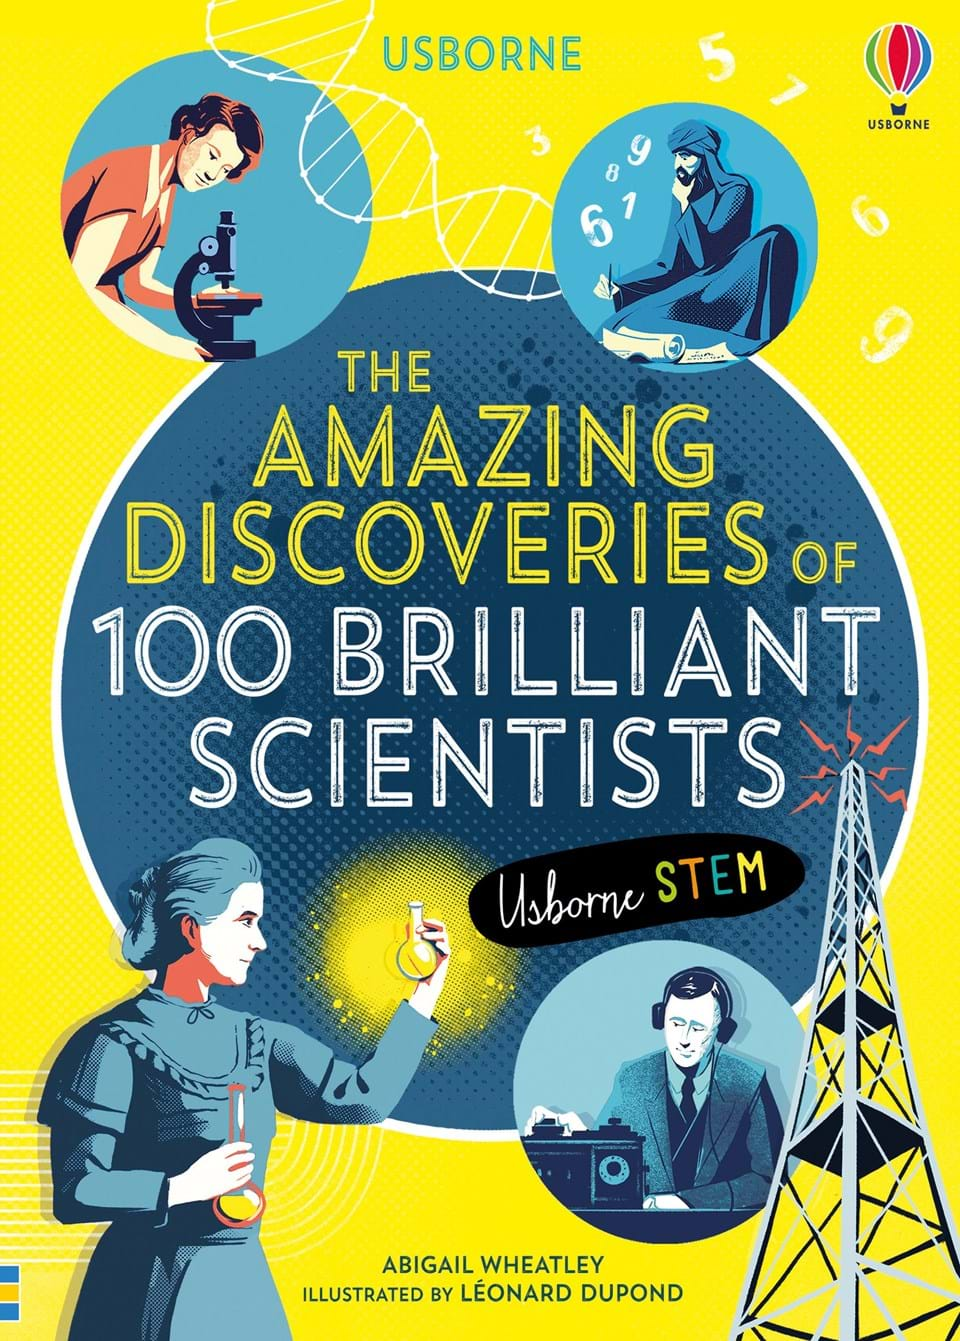 The Amazing Discoveries of 100 Brilliant Scientists